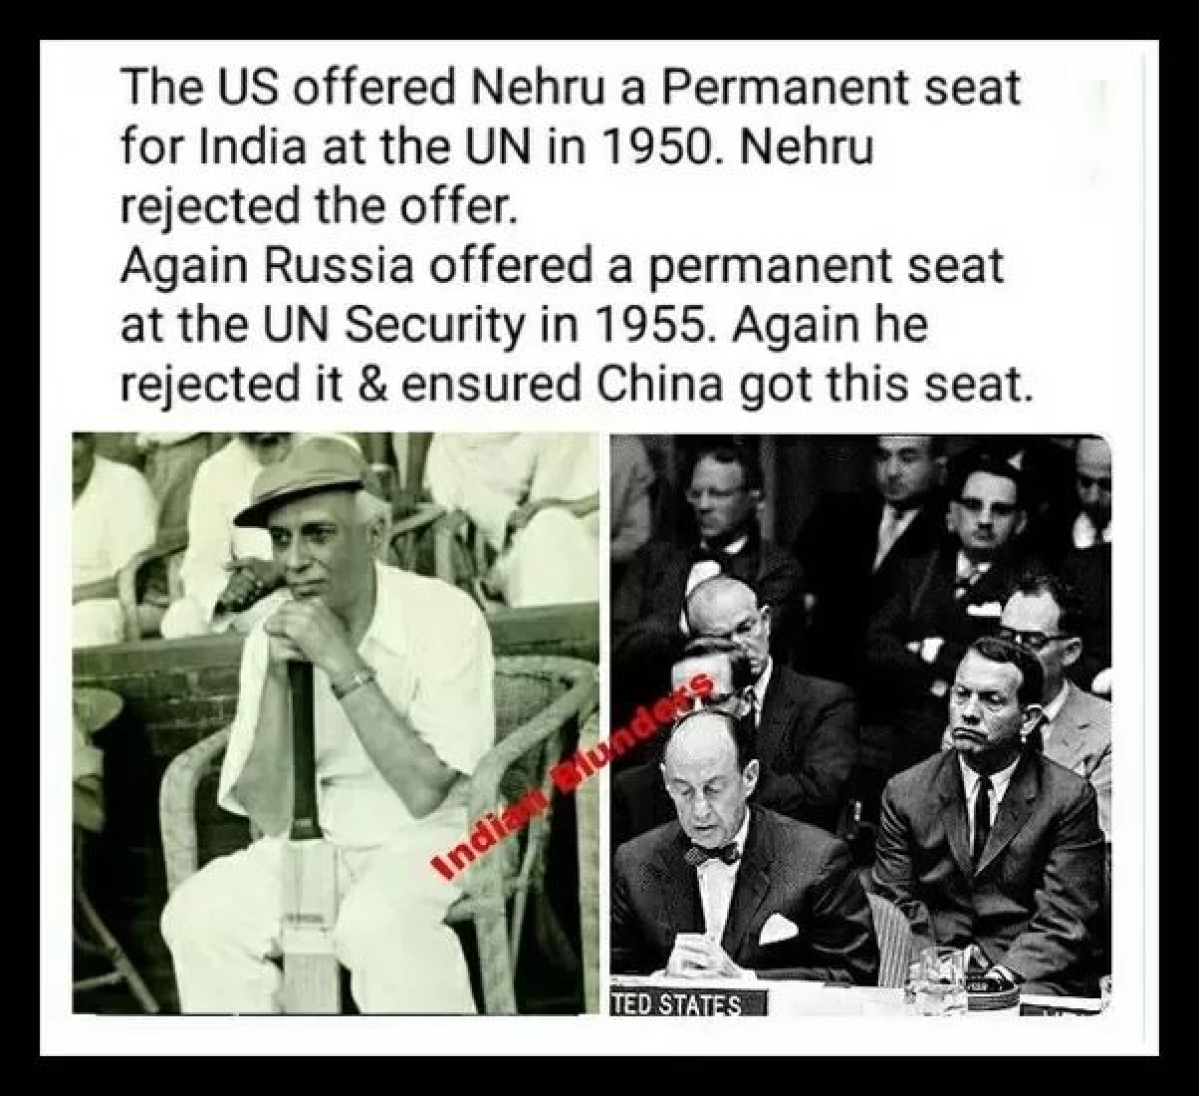 Did Nehru Reject Offers for a Permanent Seat in the UNSC